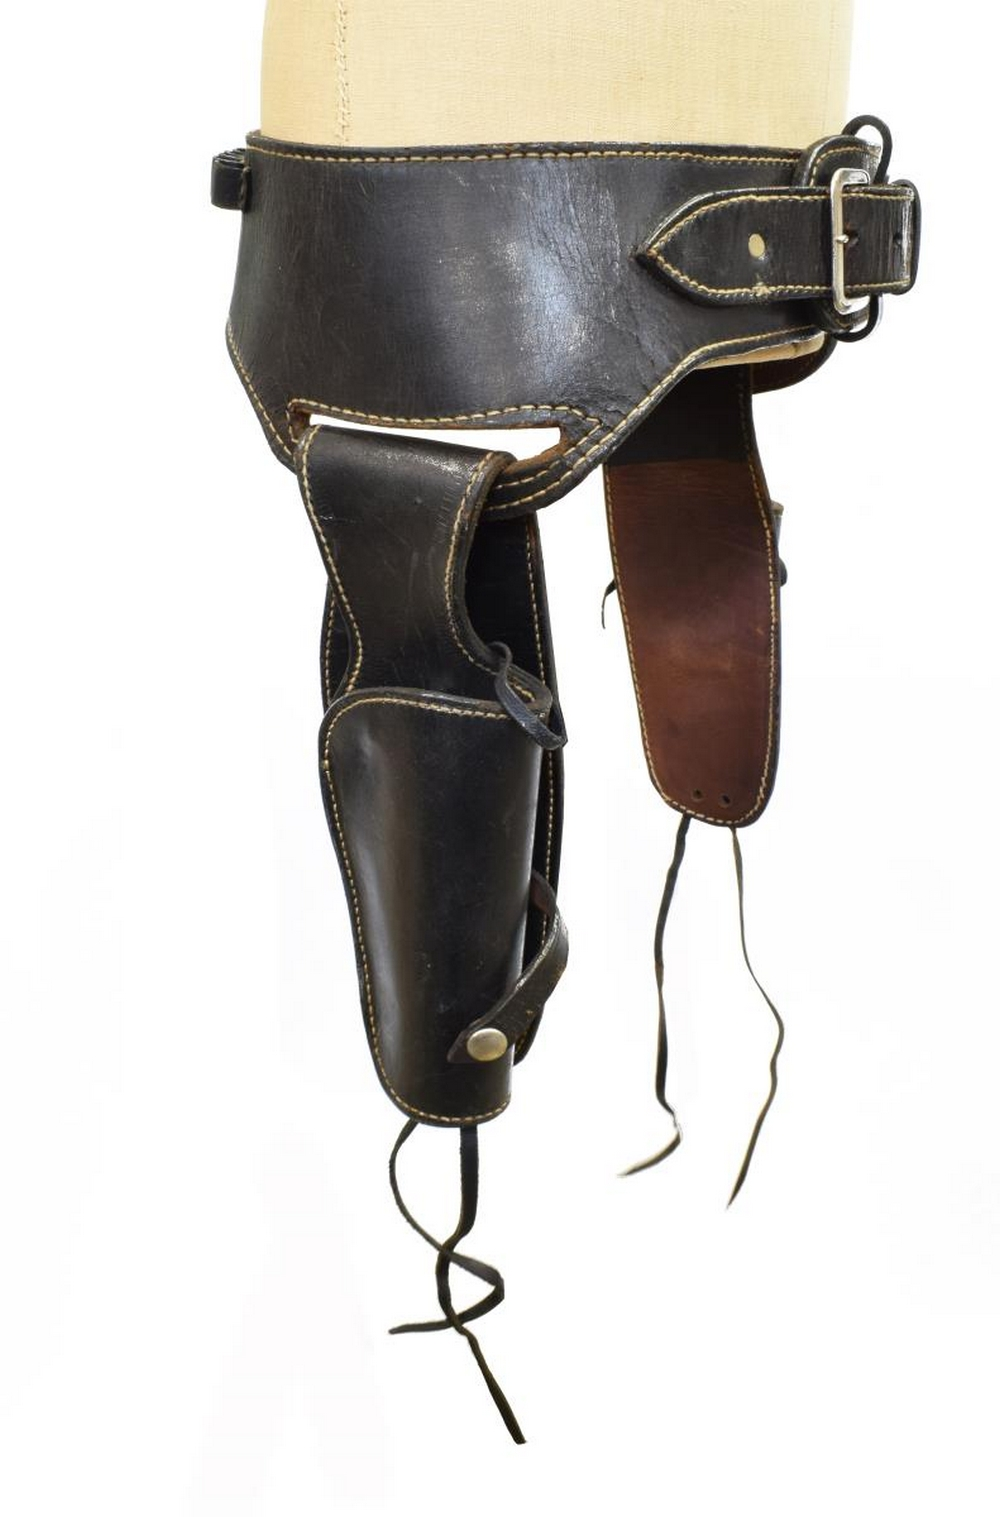 NORTH & JUDD DOUBLE HOLSTER .45 CARTRIDGE BELT